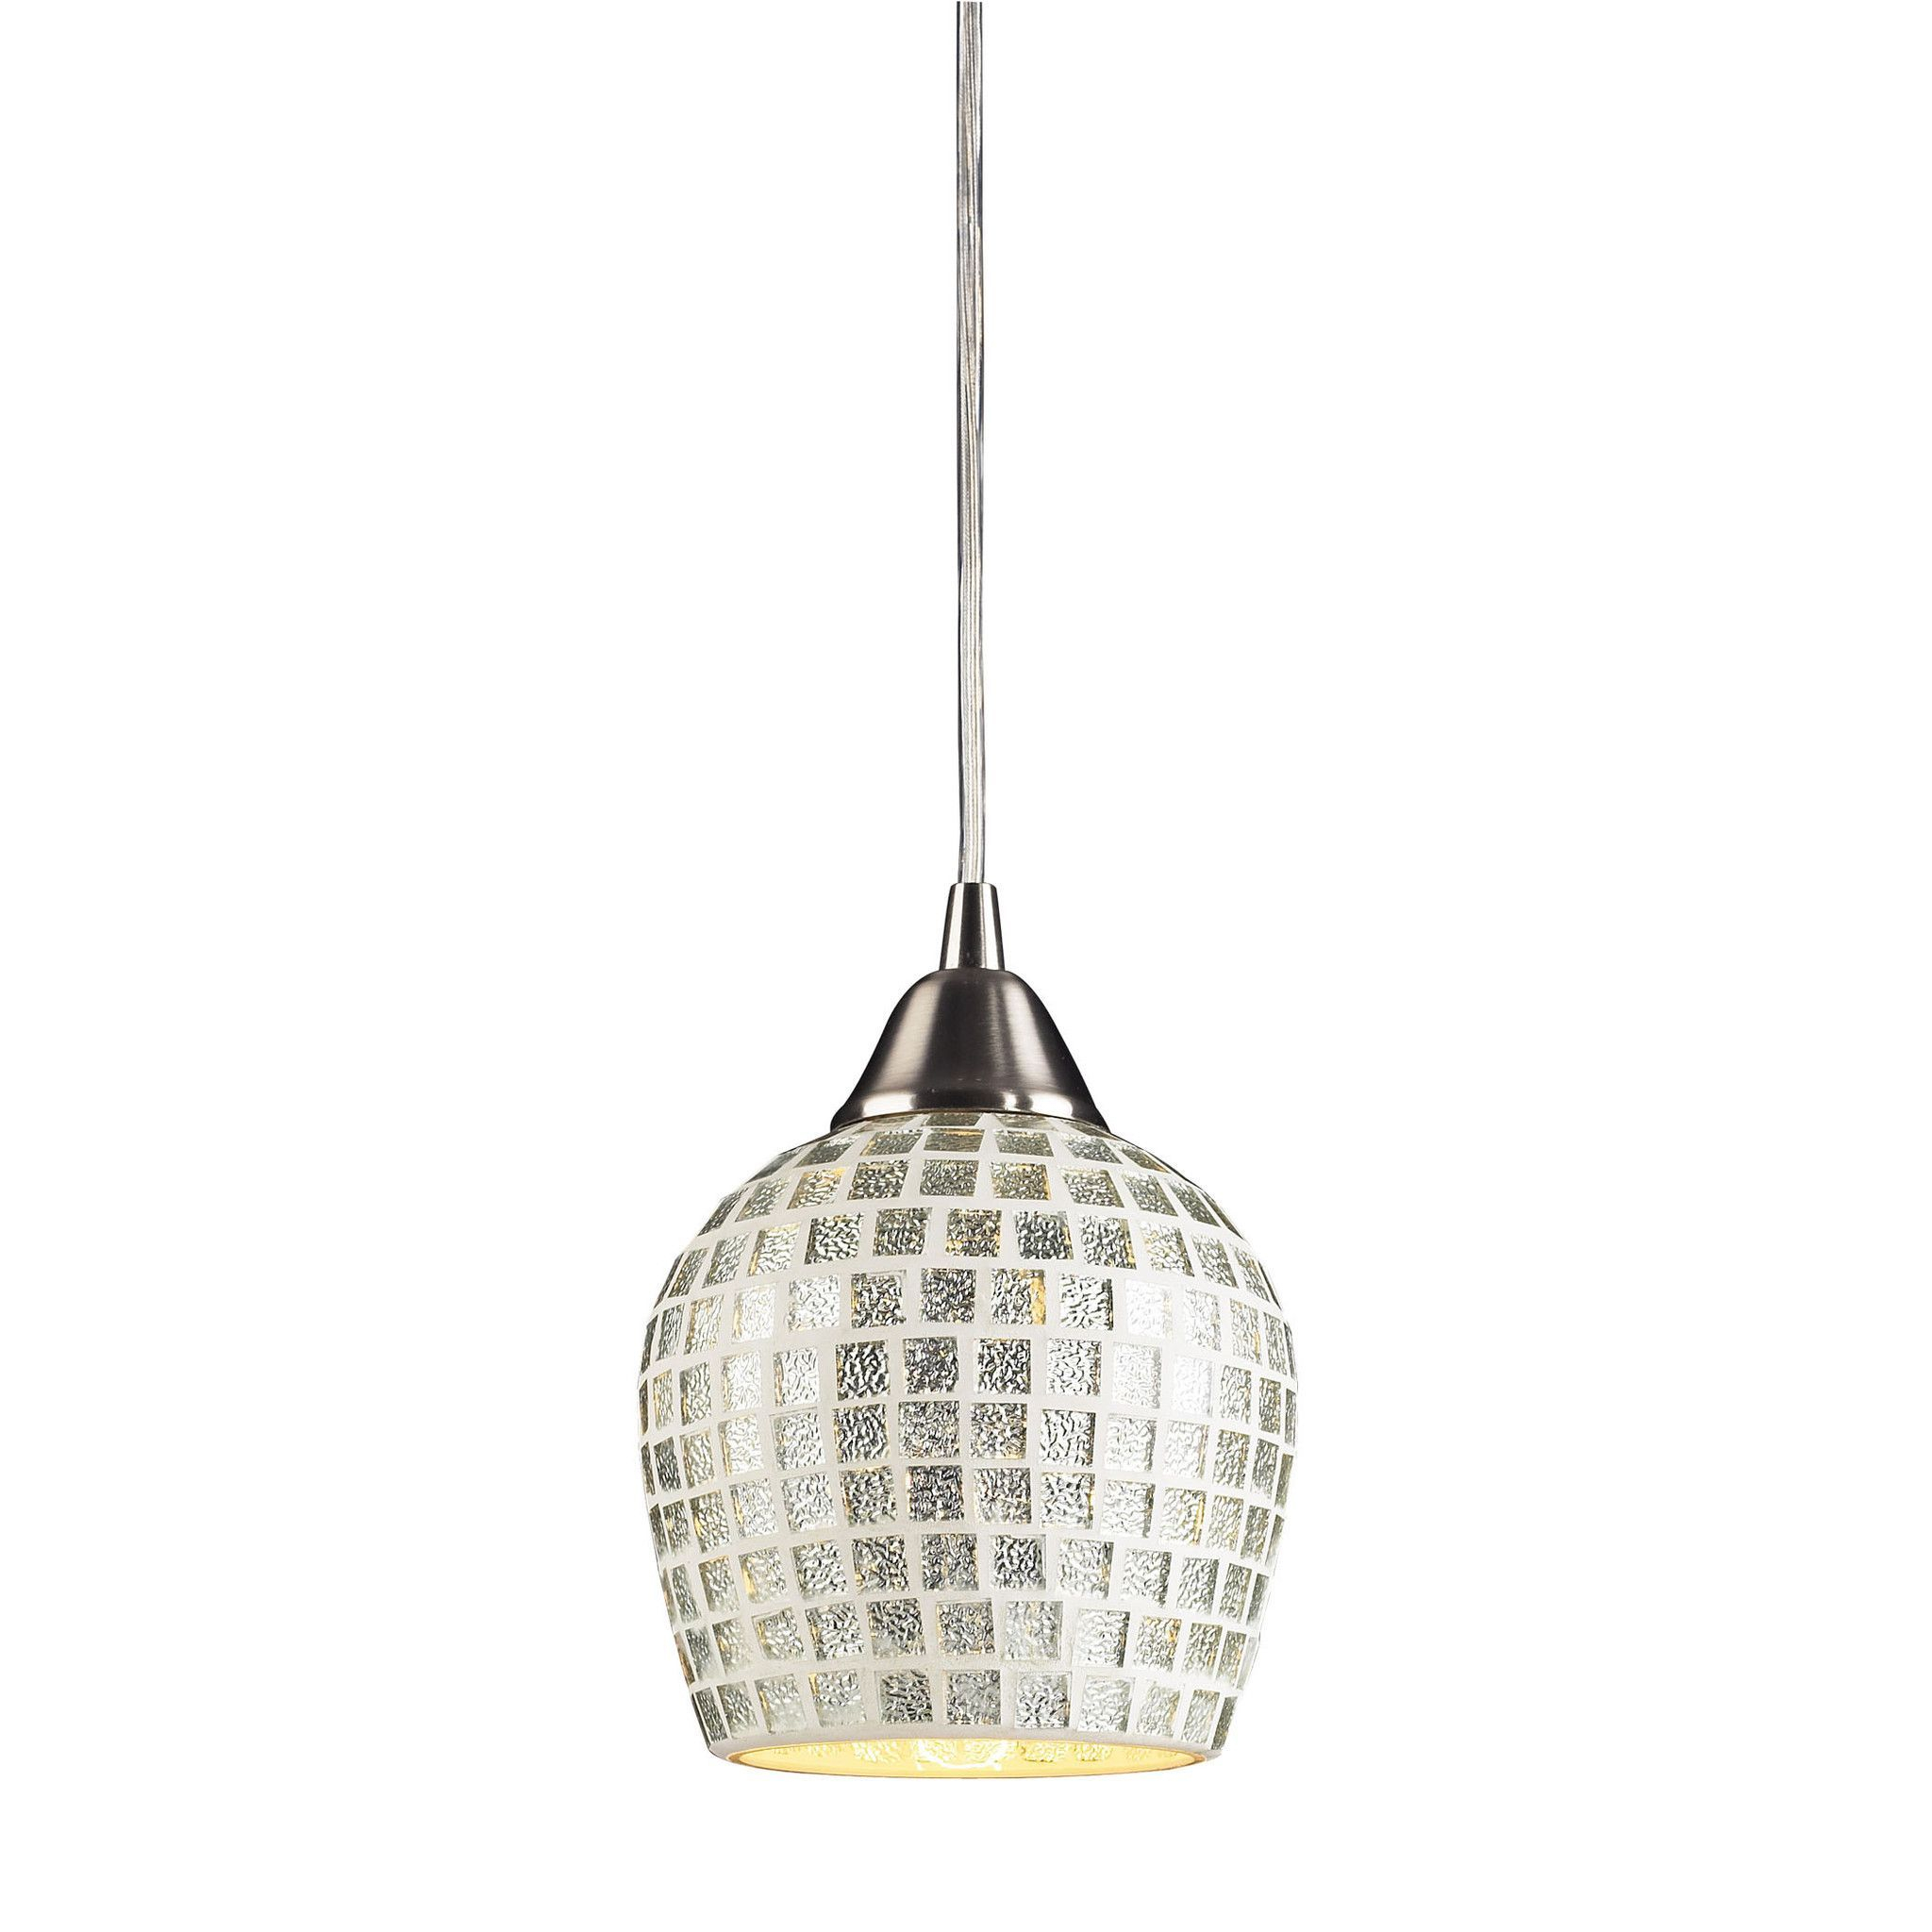 Fusion 1 Light Led Pendant In Satin Nickel And Silver Glass regarding Hermione 1-Light Single Drum Pendants (Image 11 of 30)